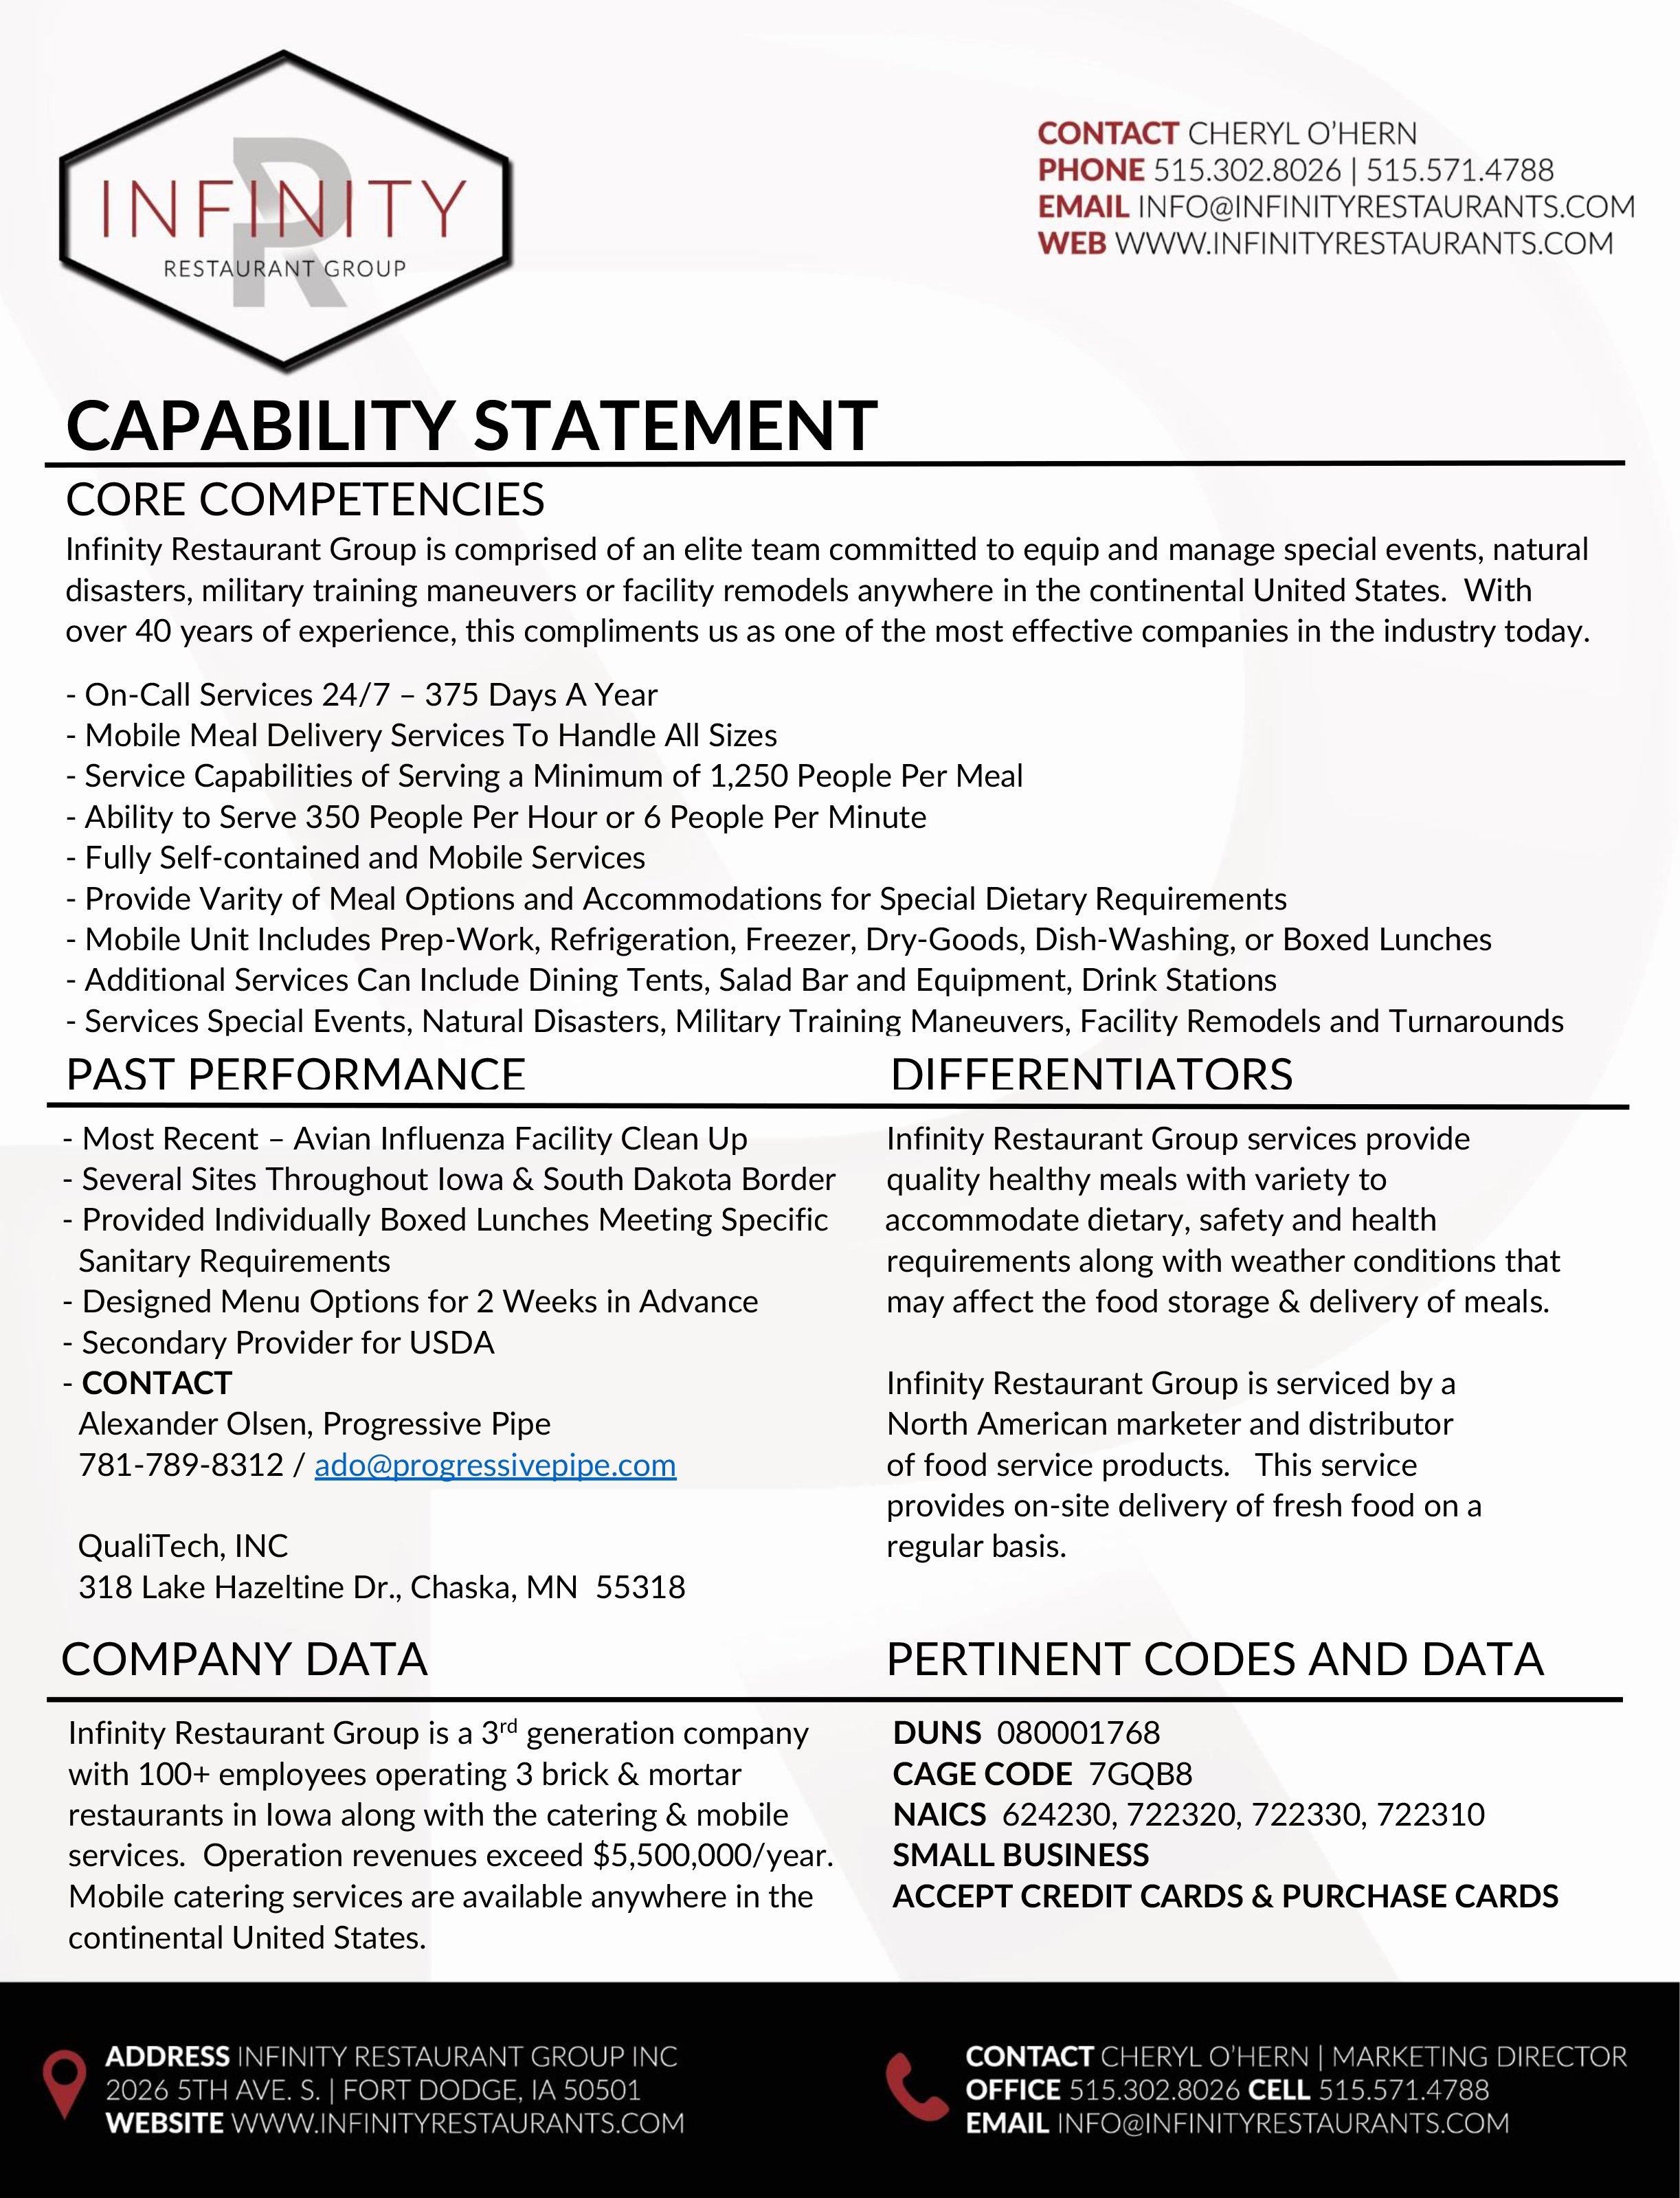 Free Capability Statement Template Download Template